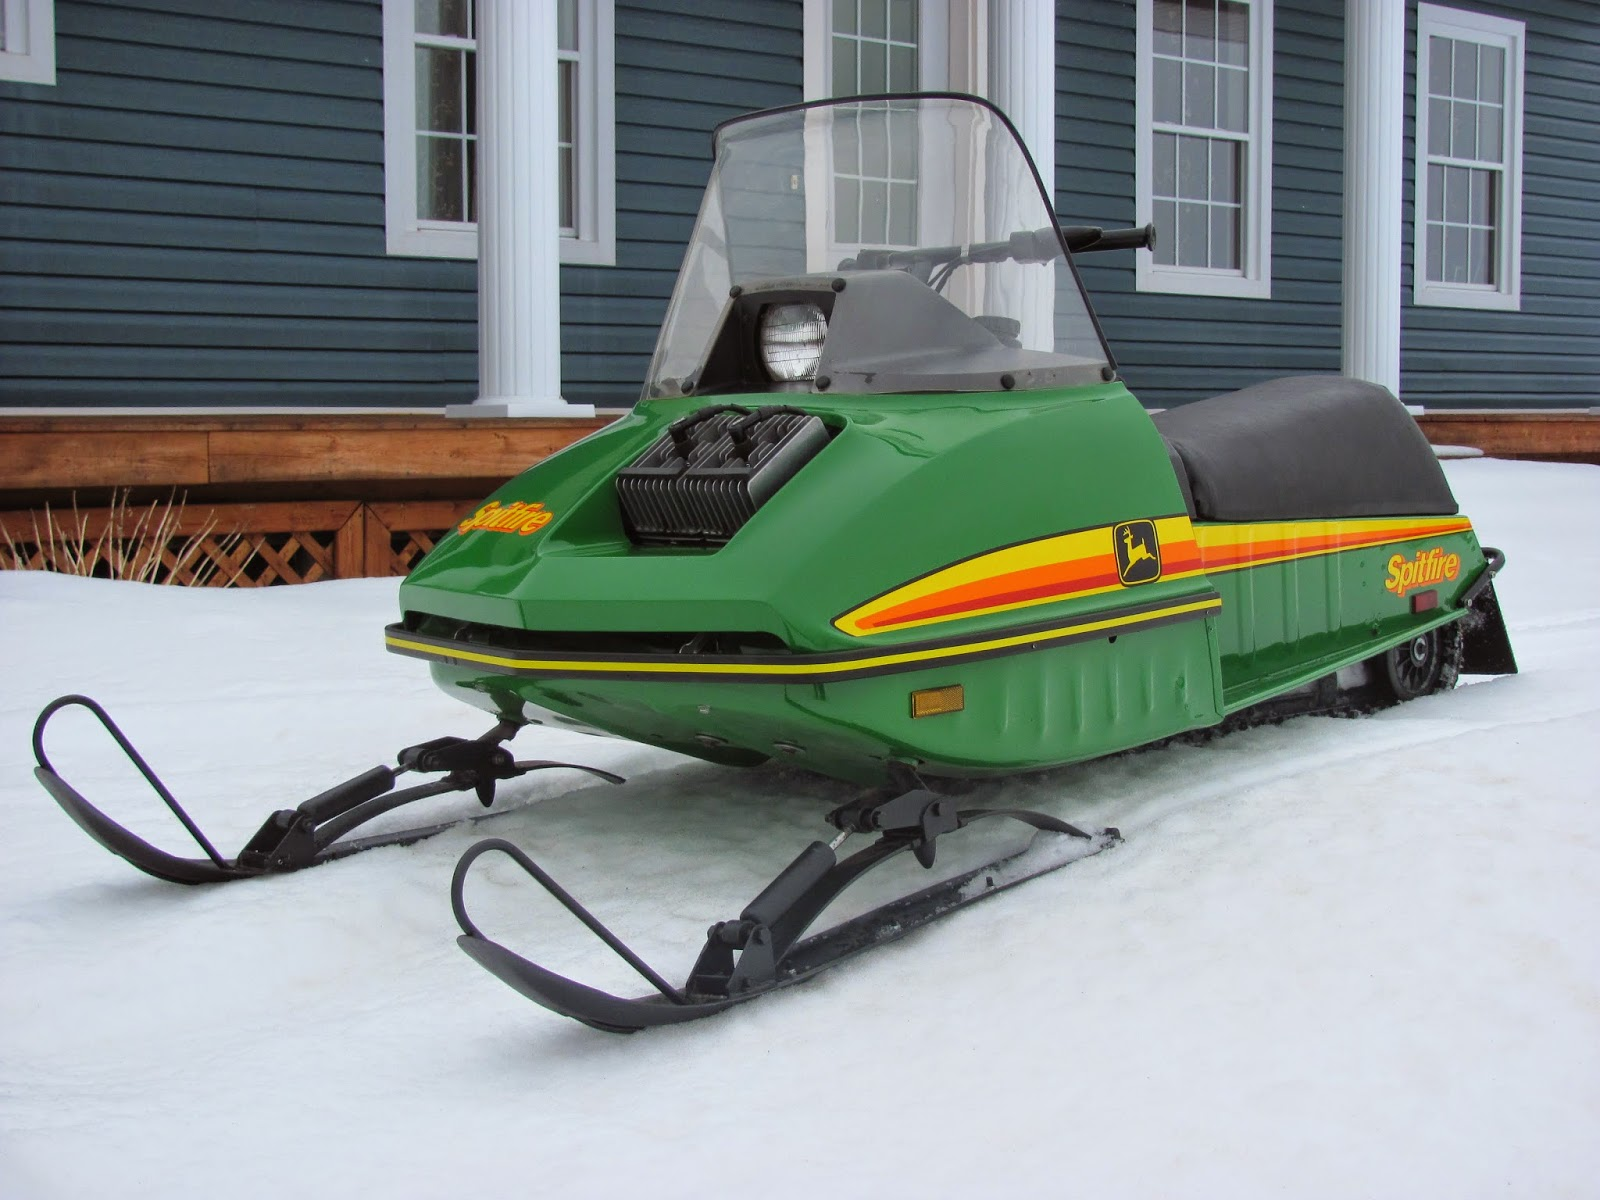 John Deere Spitfire Wiring Diagram : Classic snowmobiles of the past february